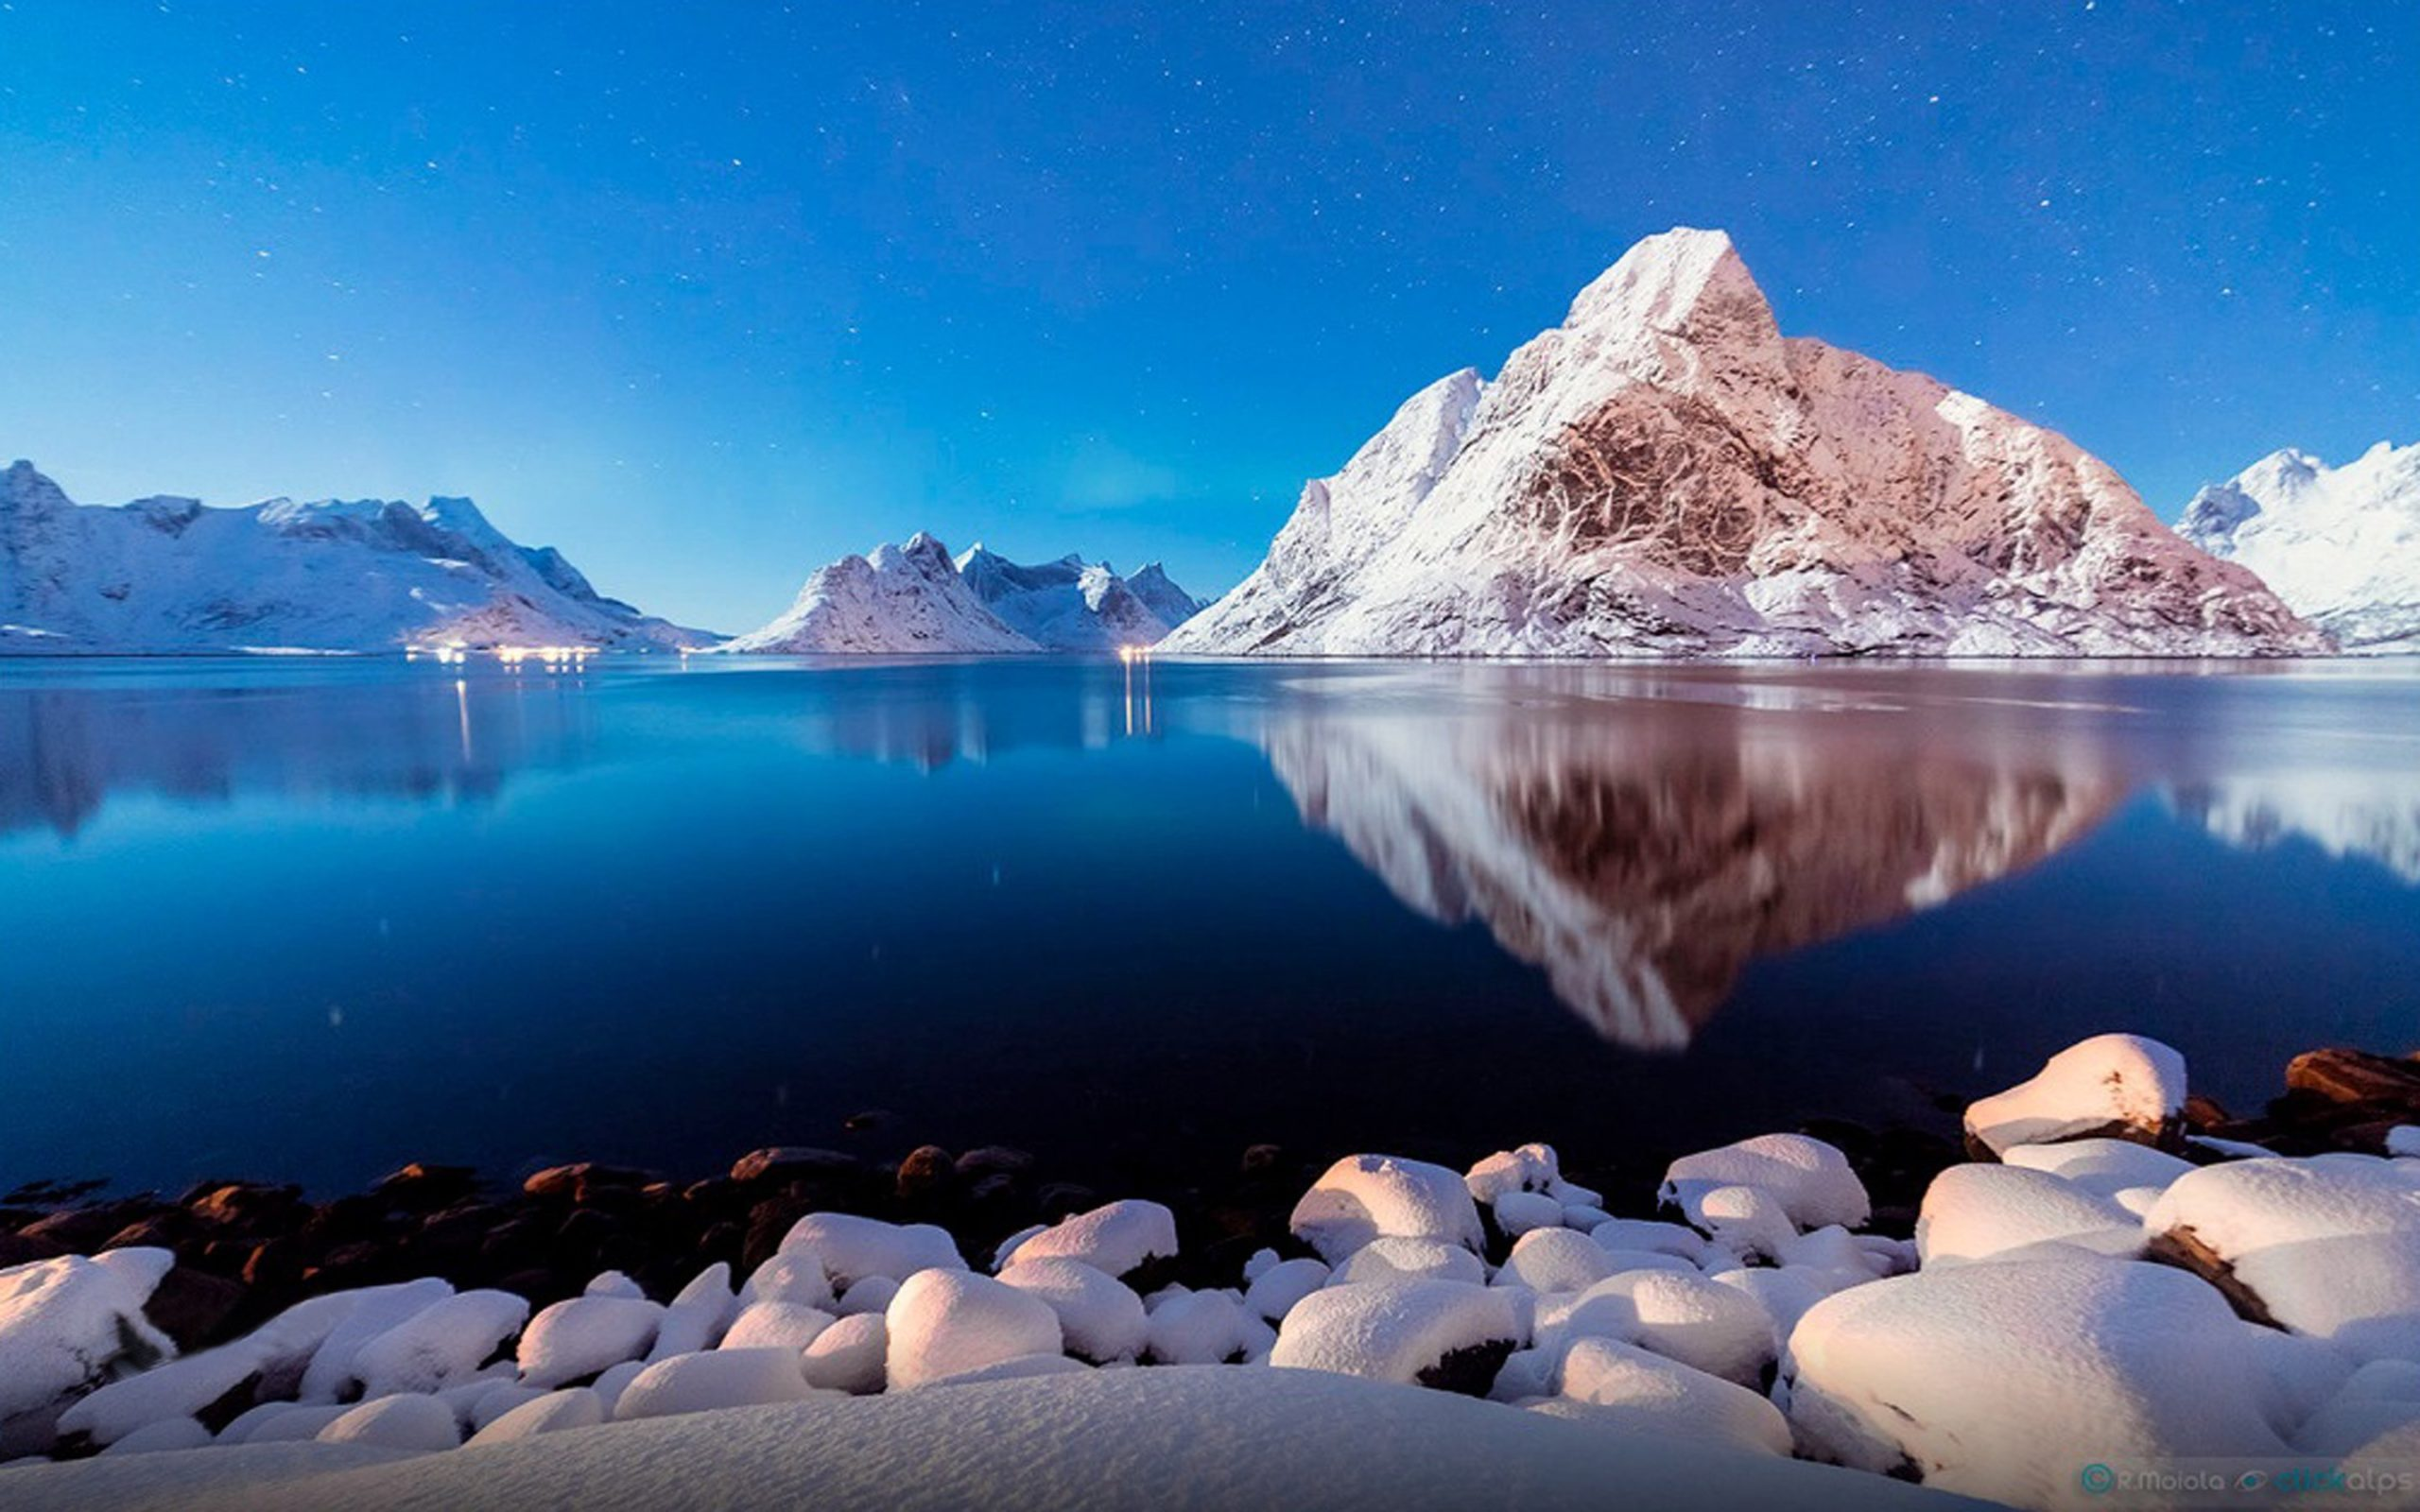 Download Winter Peaceful Lake Shore Stones Snow Mountains Blue Reflection In Water